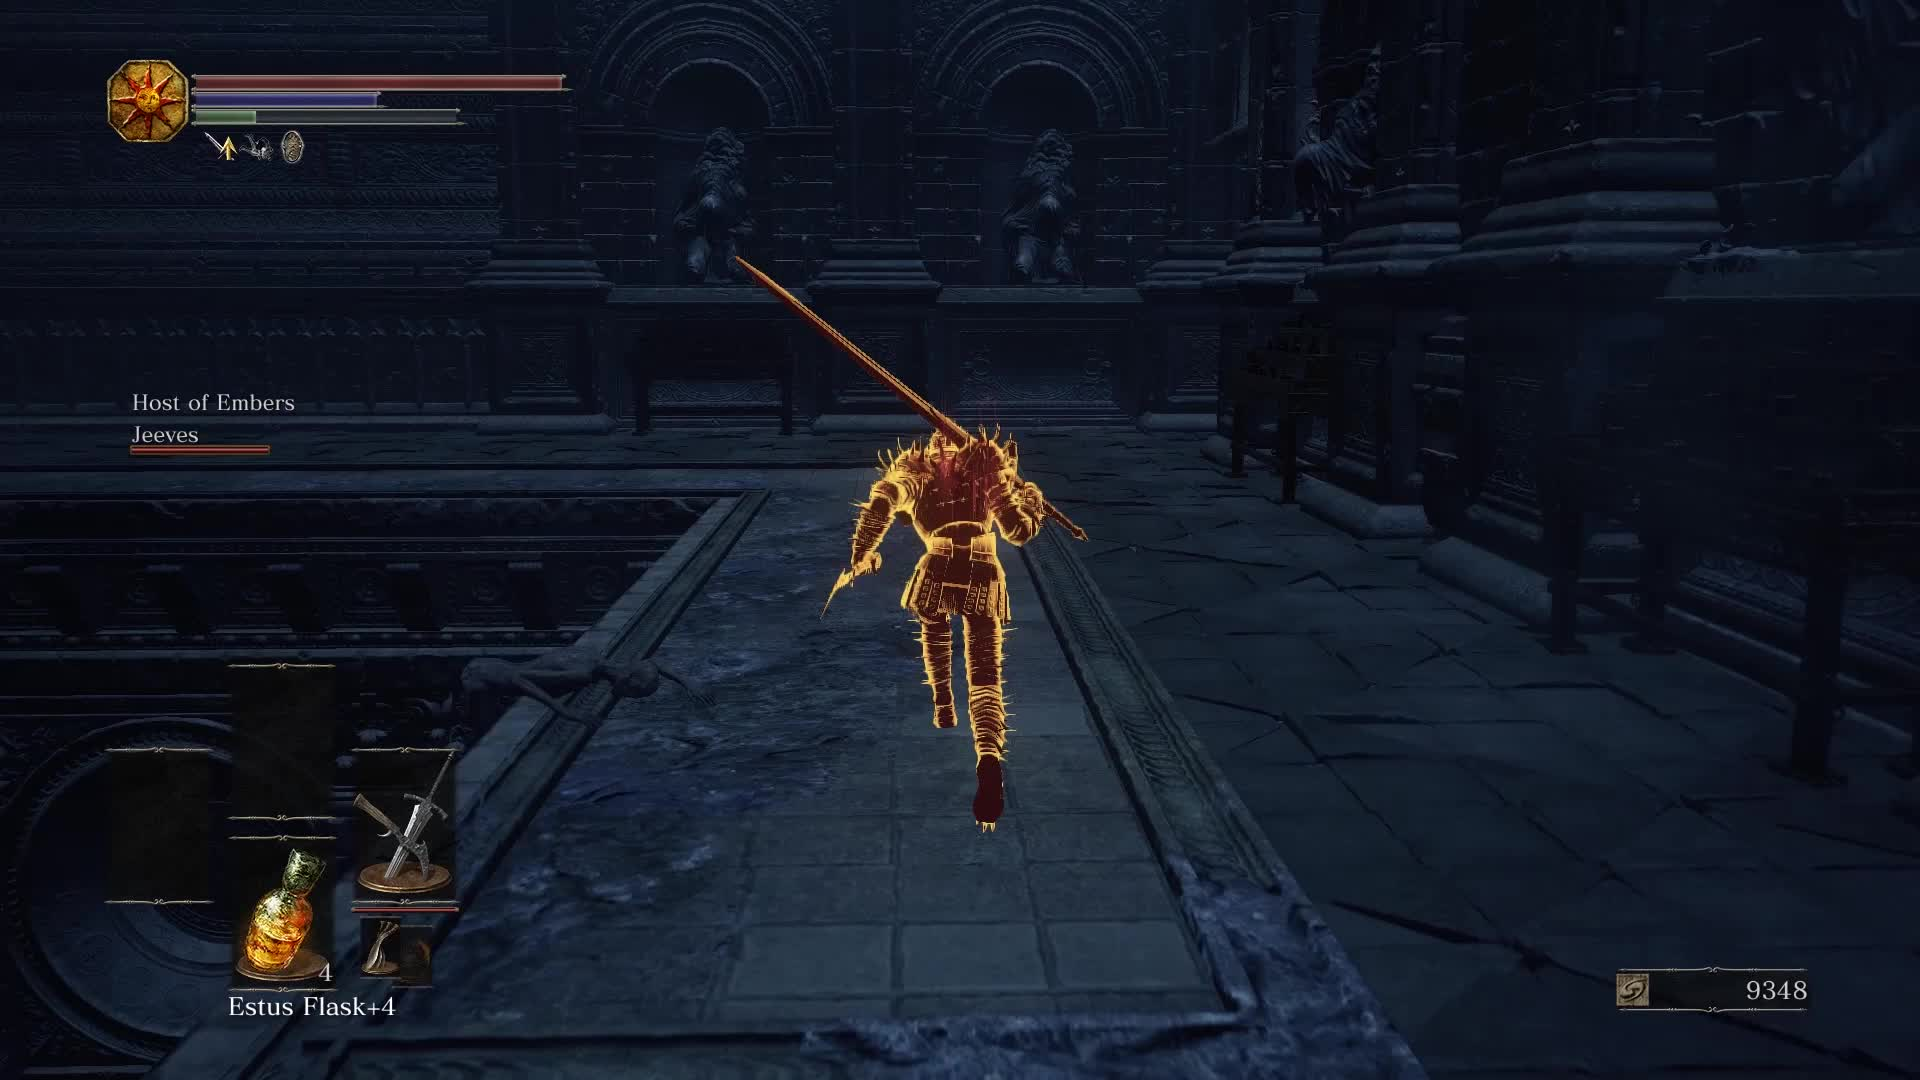 dark souls, dark souls 3, dark souls iii, ds3, funny, sun bro, did you make it GIFs